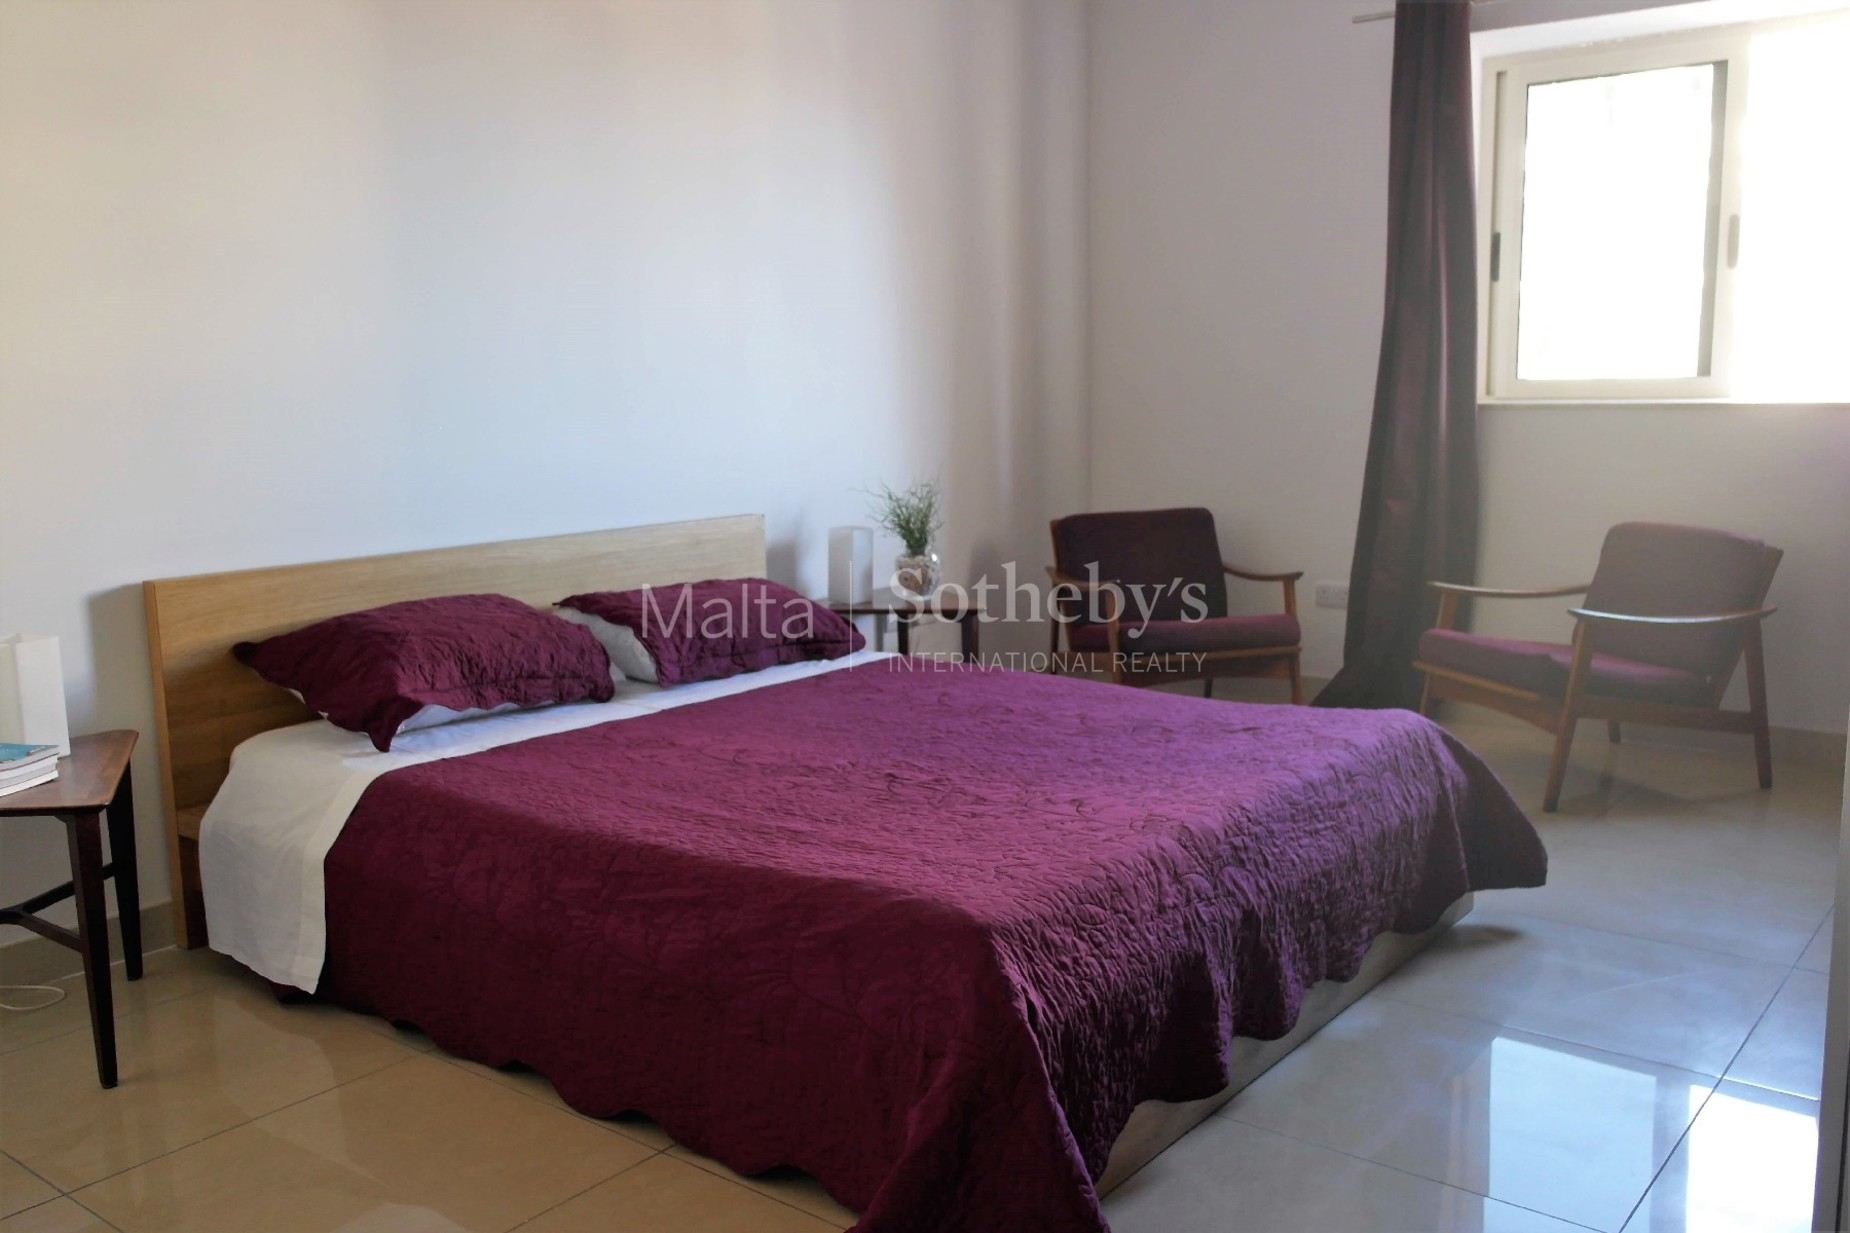 3 bed Apartment For Rent in Gzira, Gzira - thumb 8